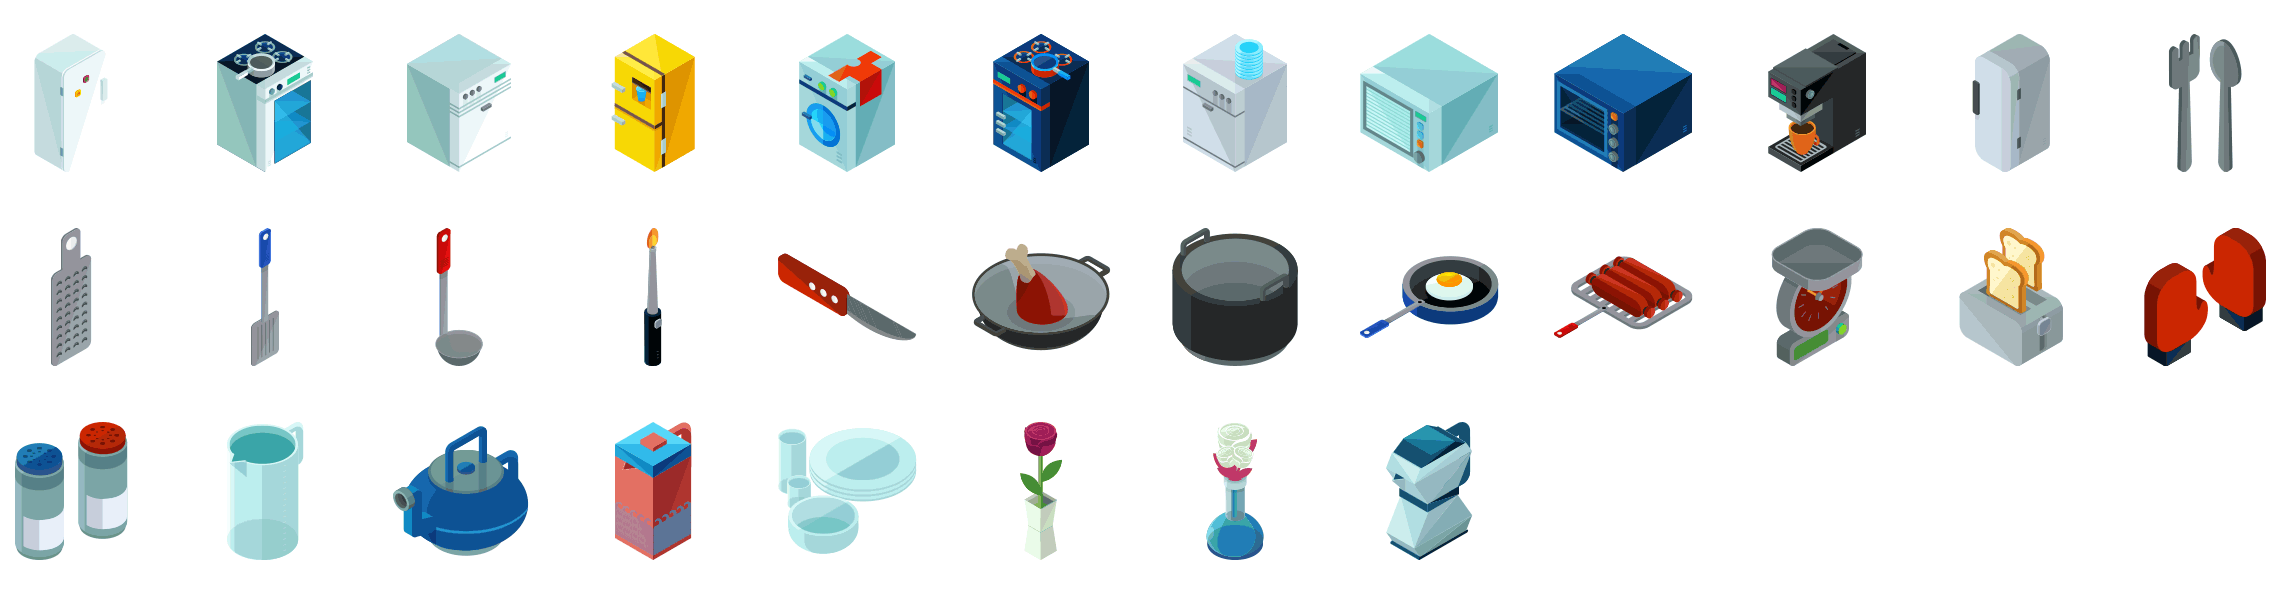 kitchen-appliances-isometric-icons-preview